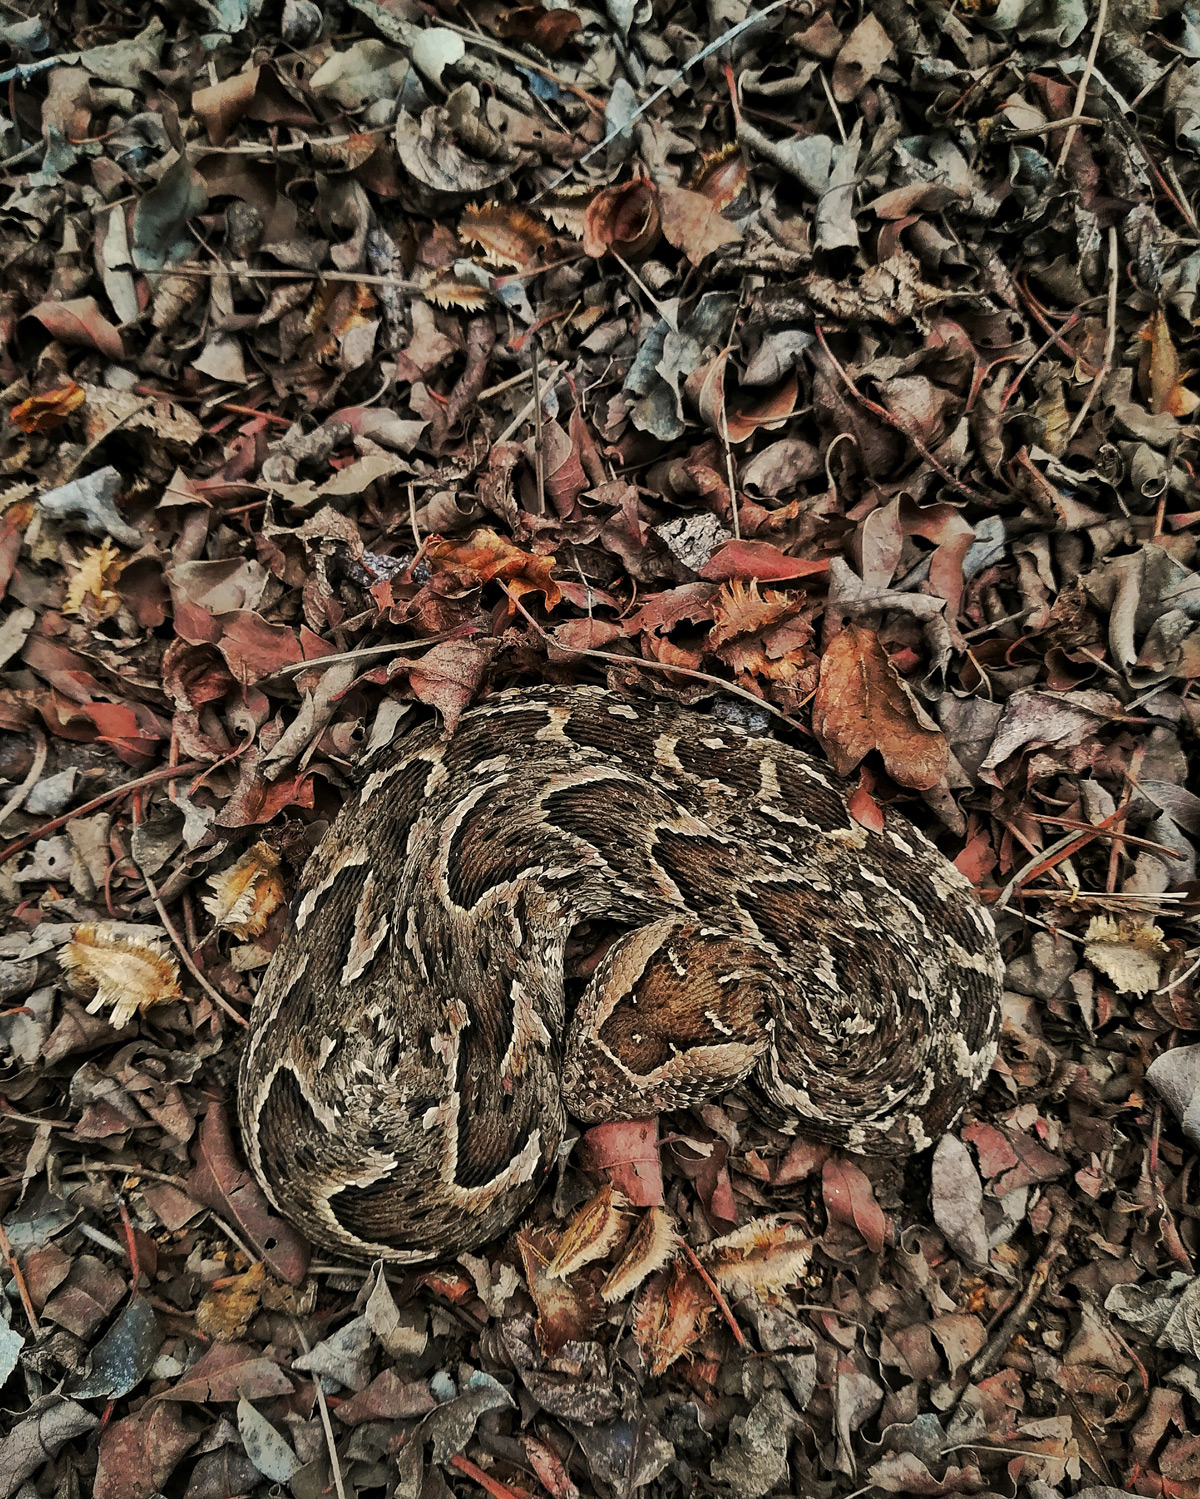 """""""Master of camouflage"""" – a puff adder in Kruger National Park, South Africa © Theo Busschau"""